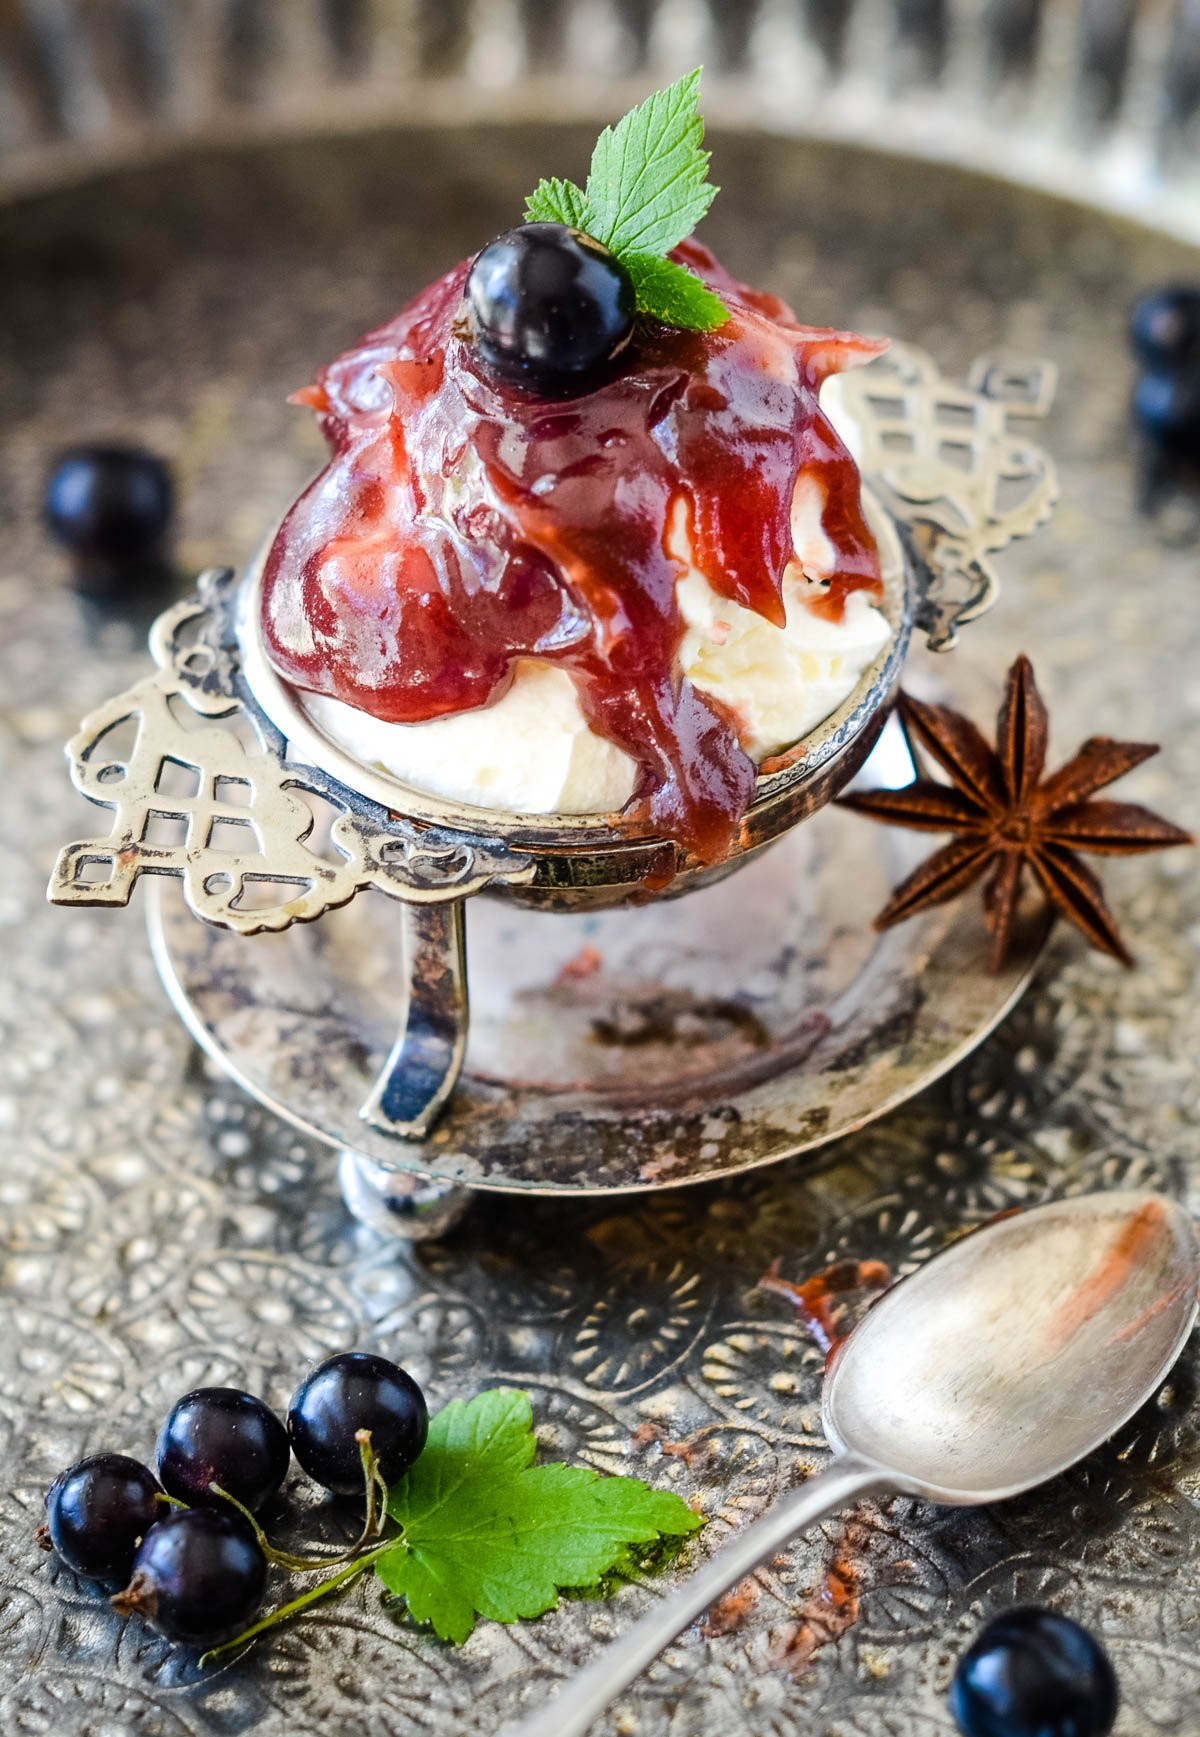 curd as dessert topping on ice cream on silver tray with spoon at side